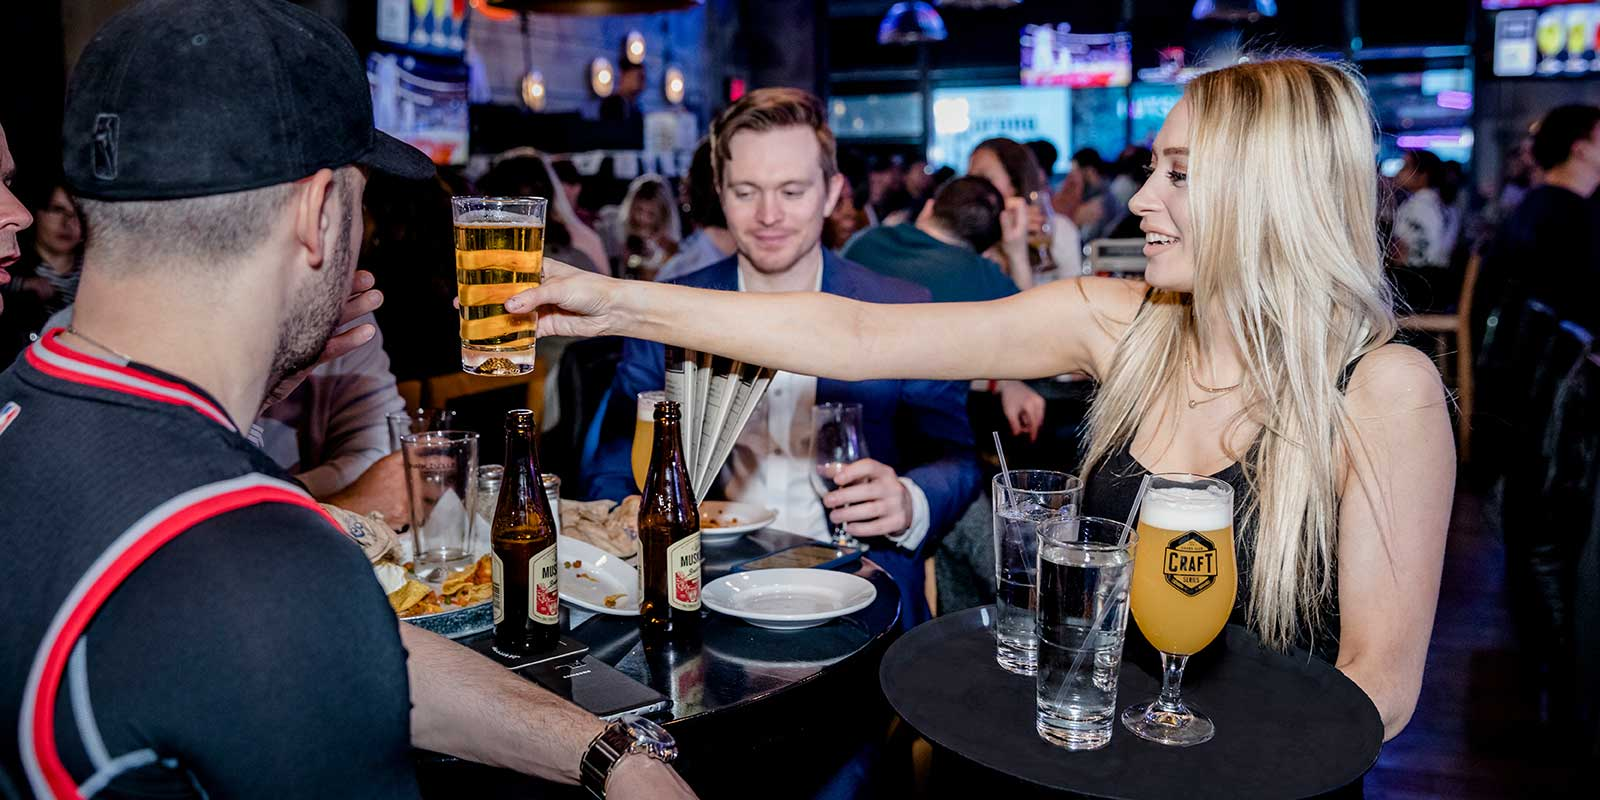 Shark Club Sports Bar & Grill Toronto - Gallery 3